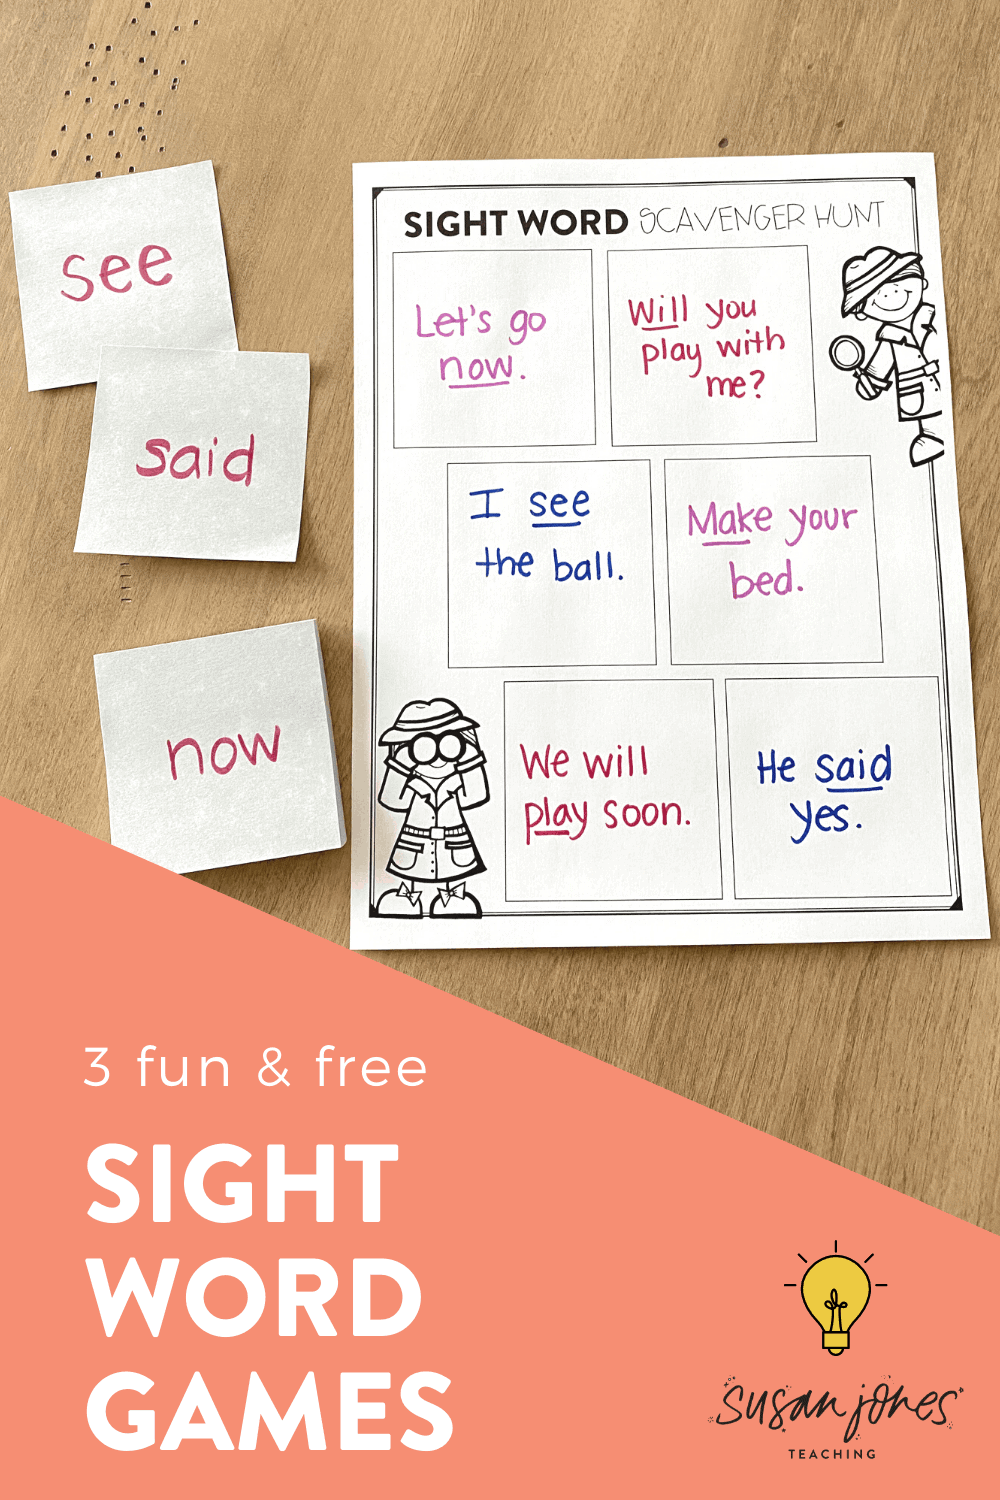 I love these free sight word activities to play at home or in the classroom because they're FUN, engaging, and educational all at the same time! My own soon-to-be kindergarten student has played all of these with me at home over the last few months and he has been having so much fun! Head over to the blog post to see all three sight word games and grab the free worksheets!